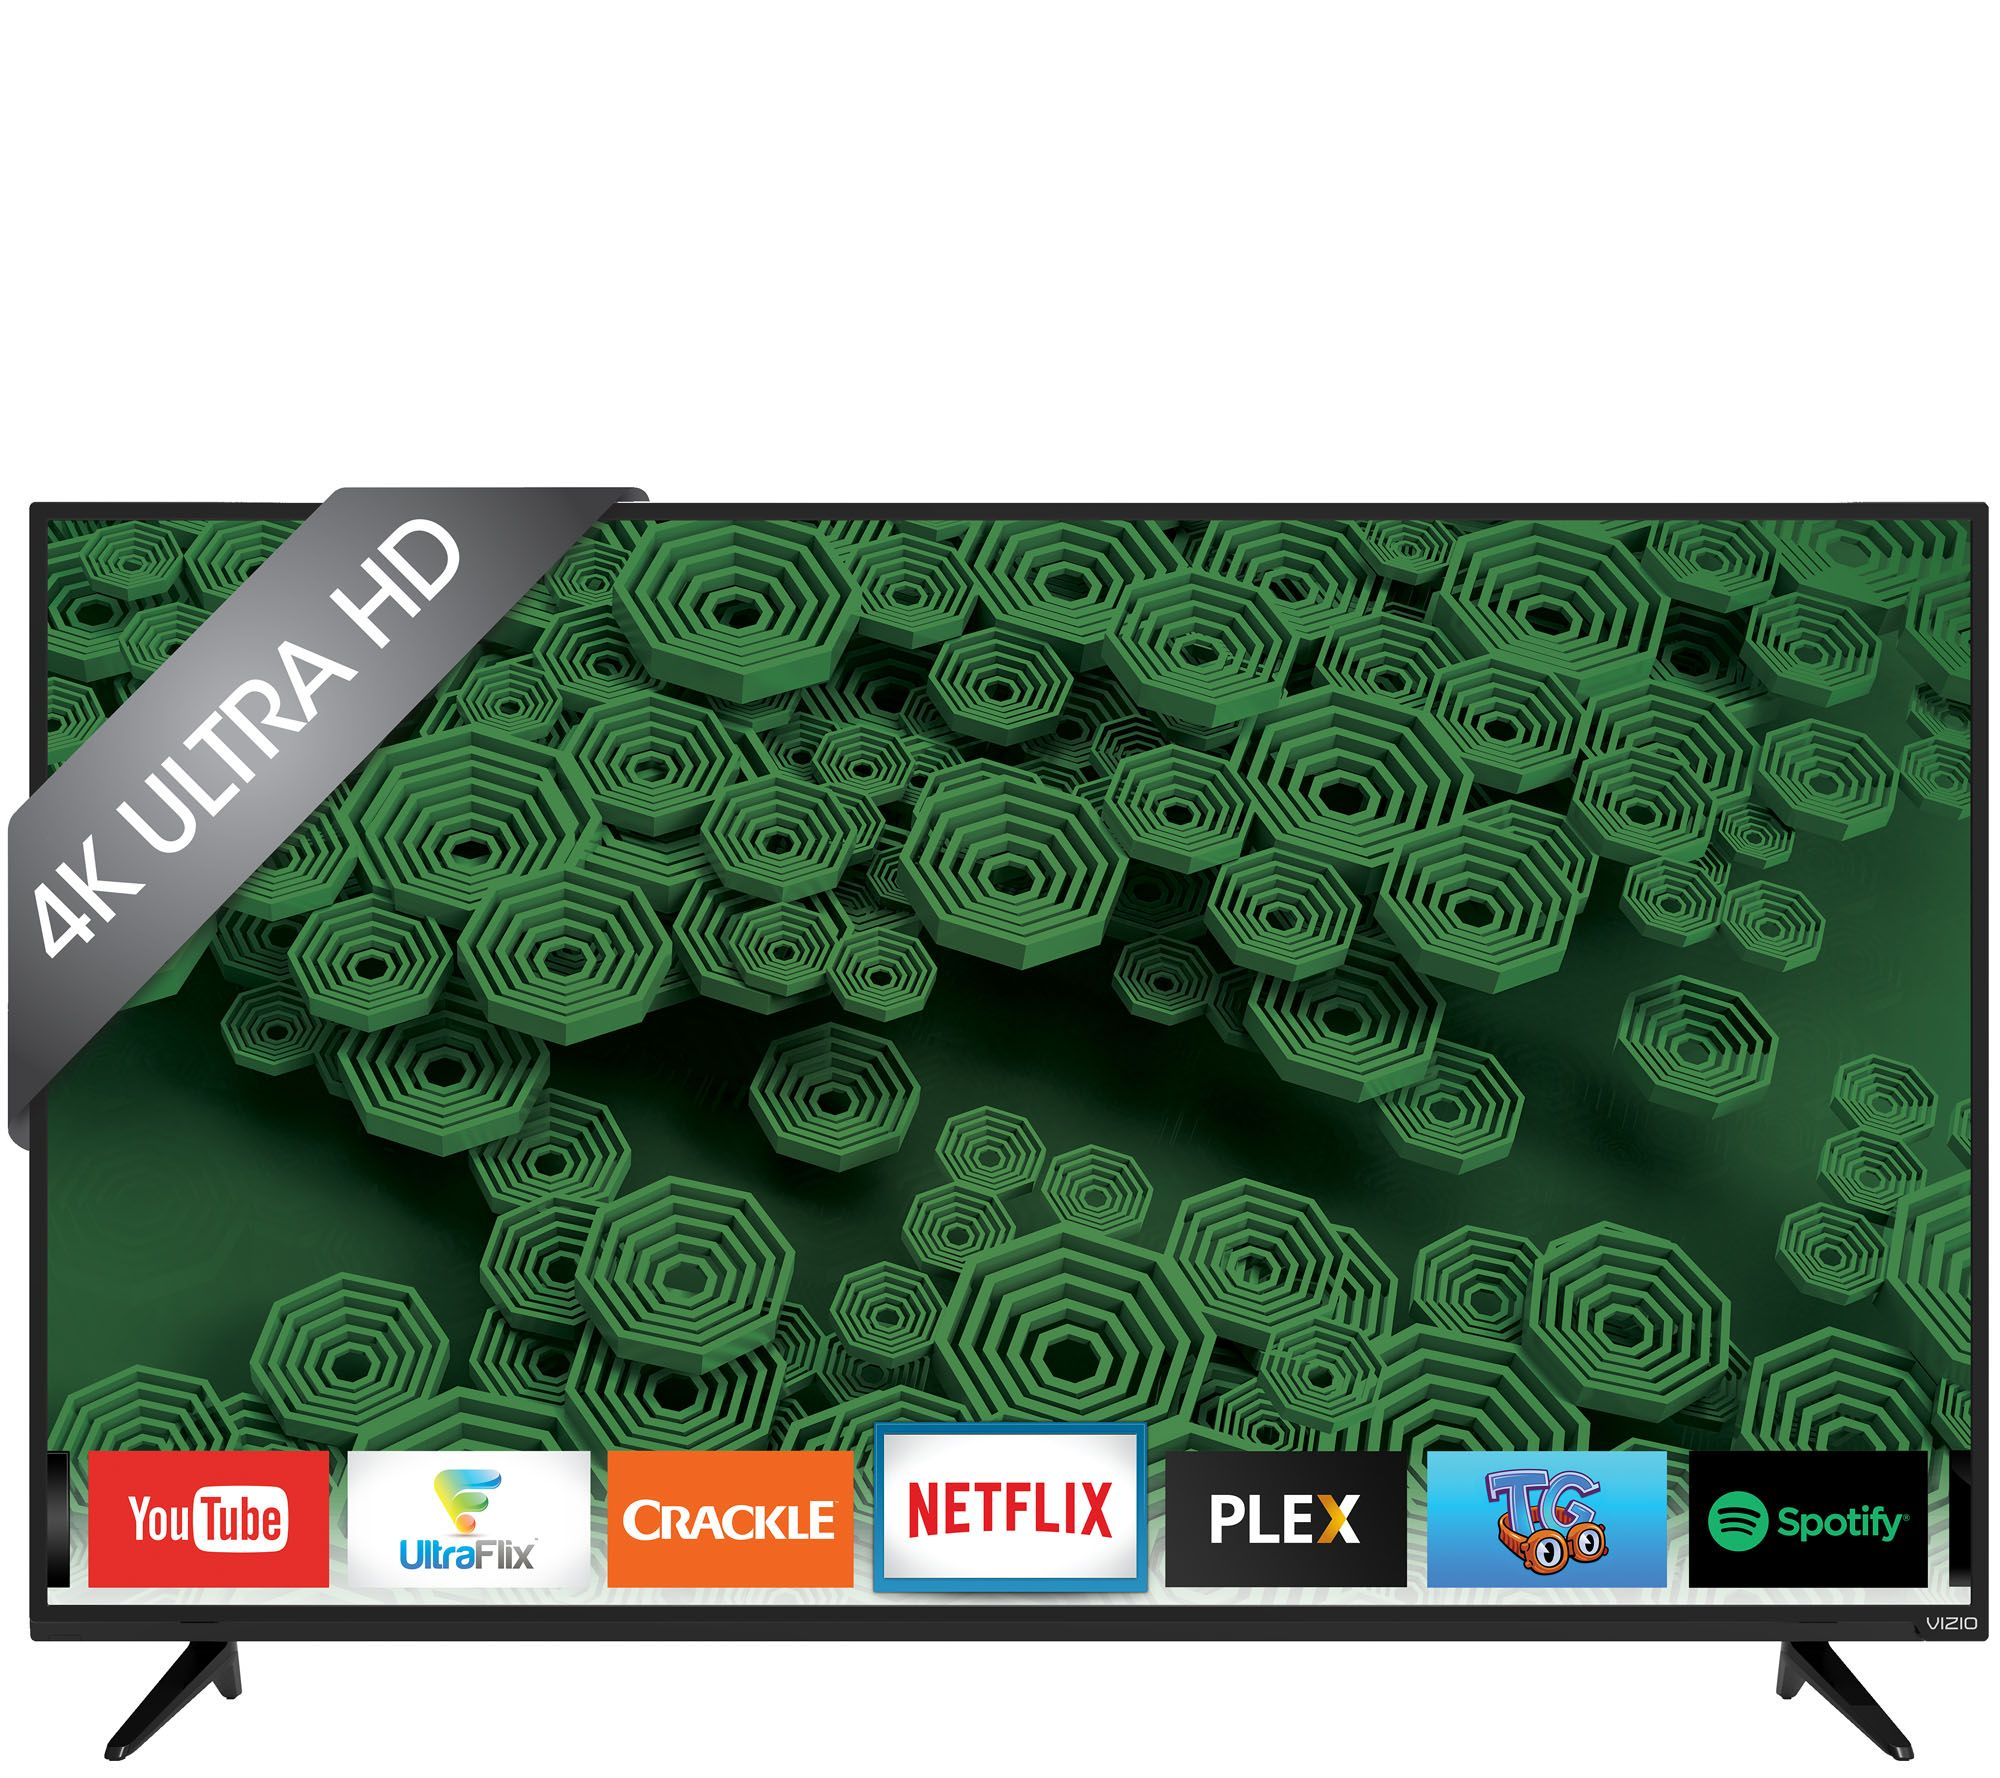 Vizio D Series 50 Class Led Ultra Hdtv With Hdmi Cable 2 Year Warranty Page 1 Qvc Com